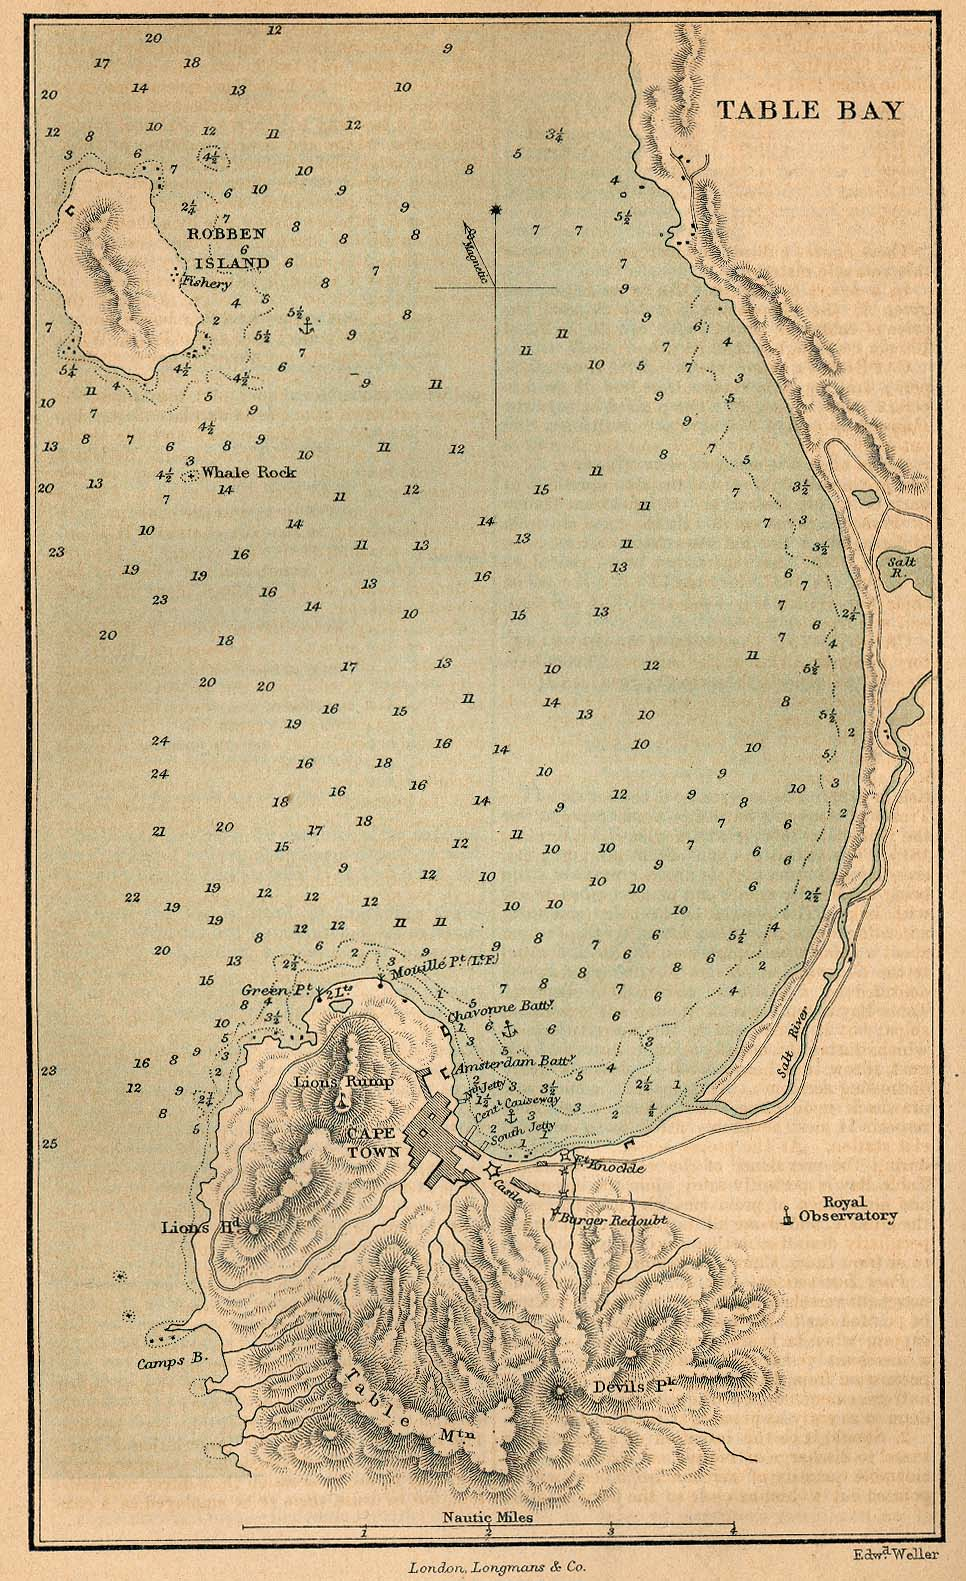 Table Bay Map, South Africa 1882